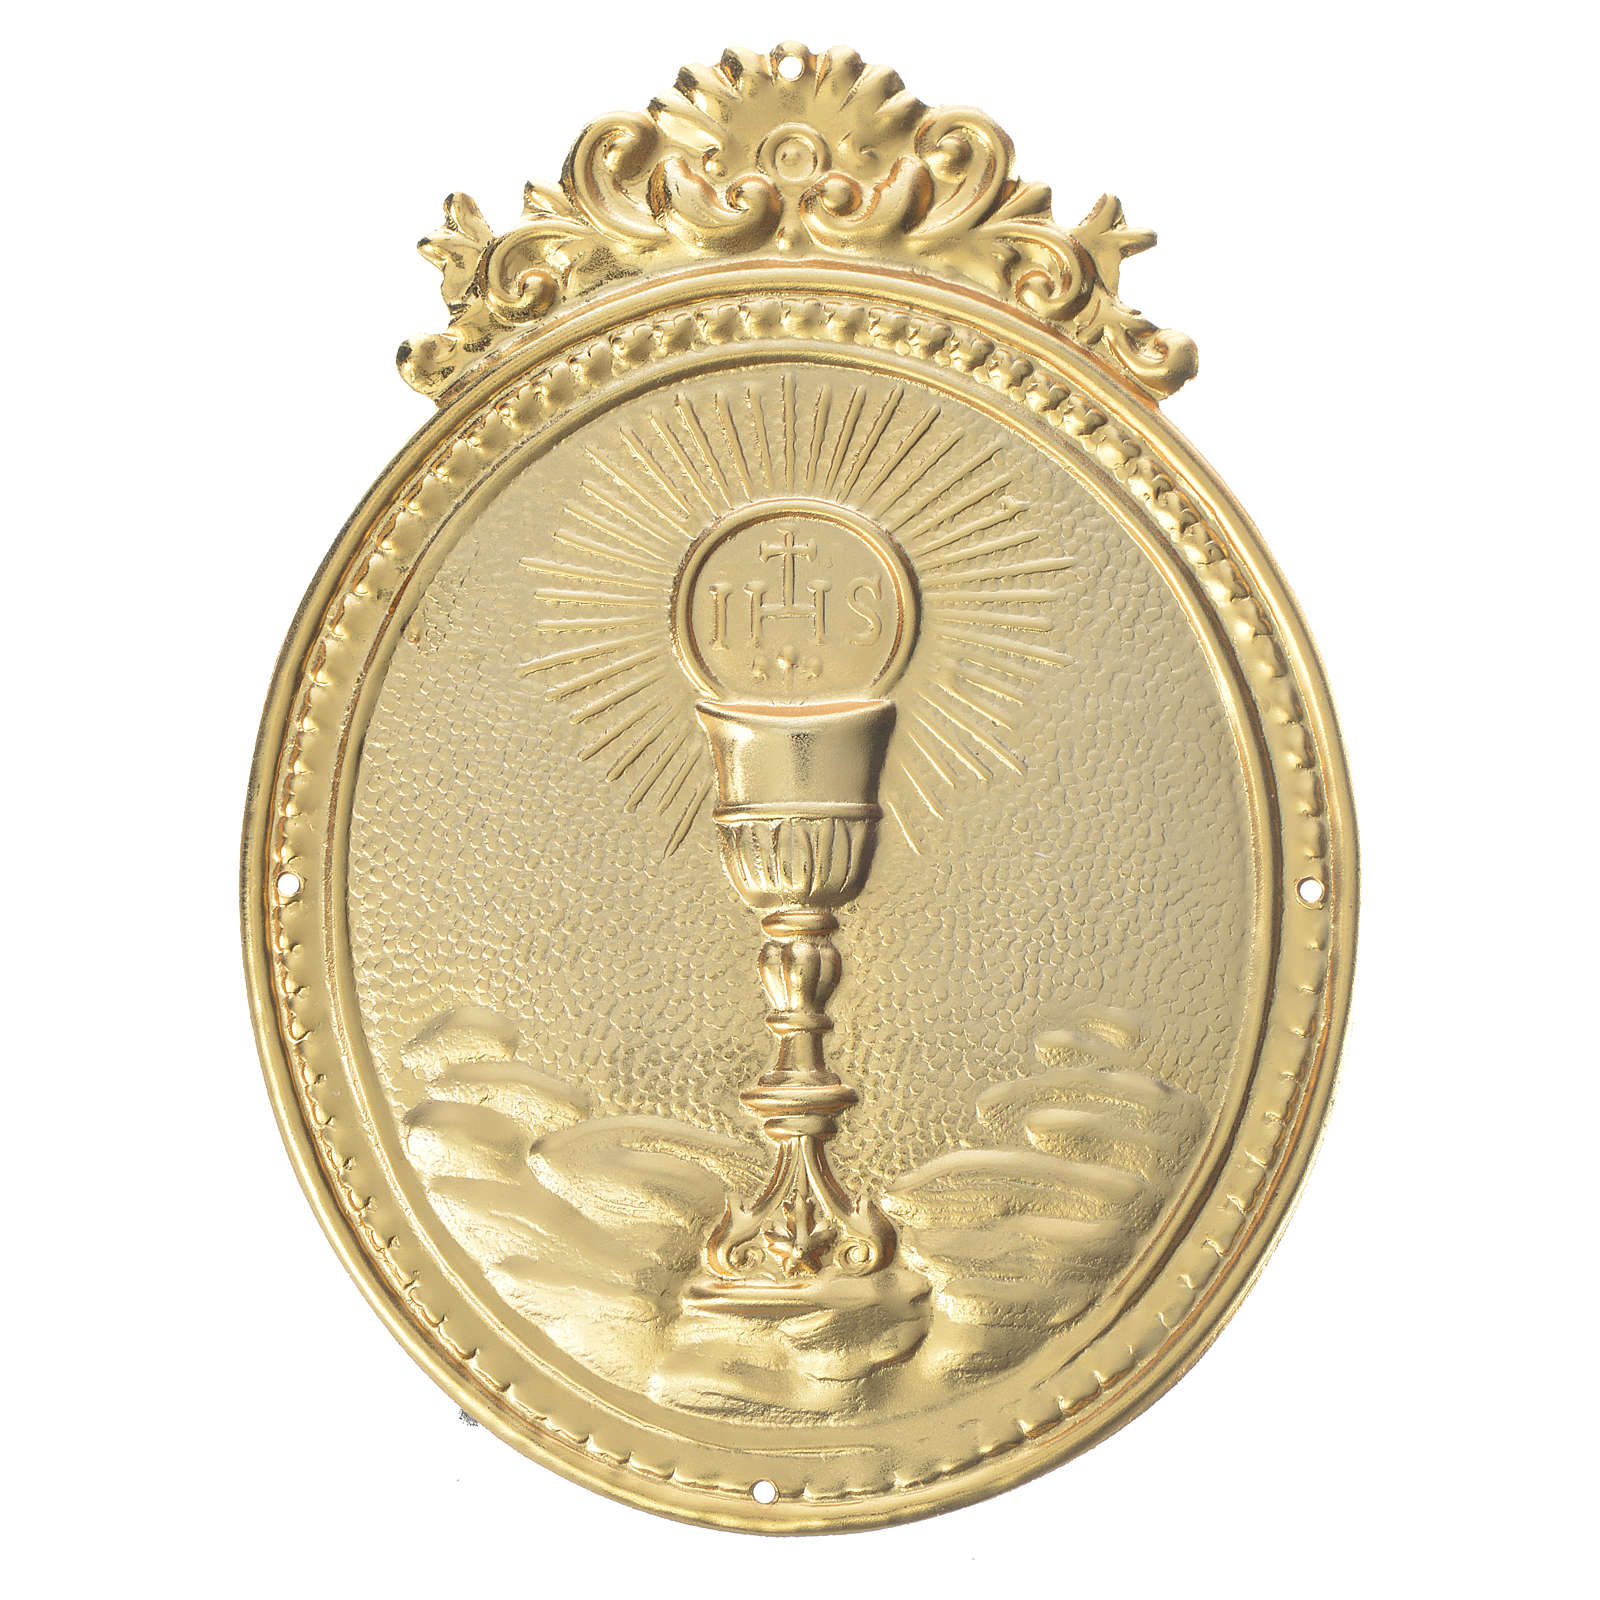 Confraternity Medal, Chalice with host and IHS 3